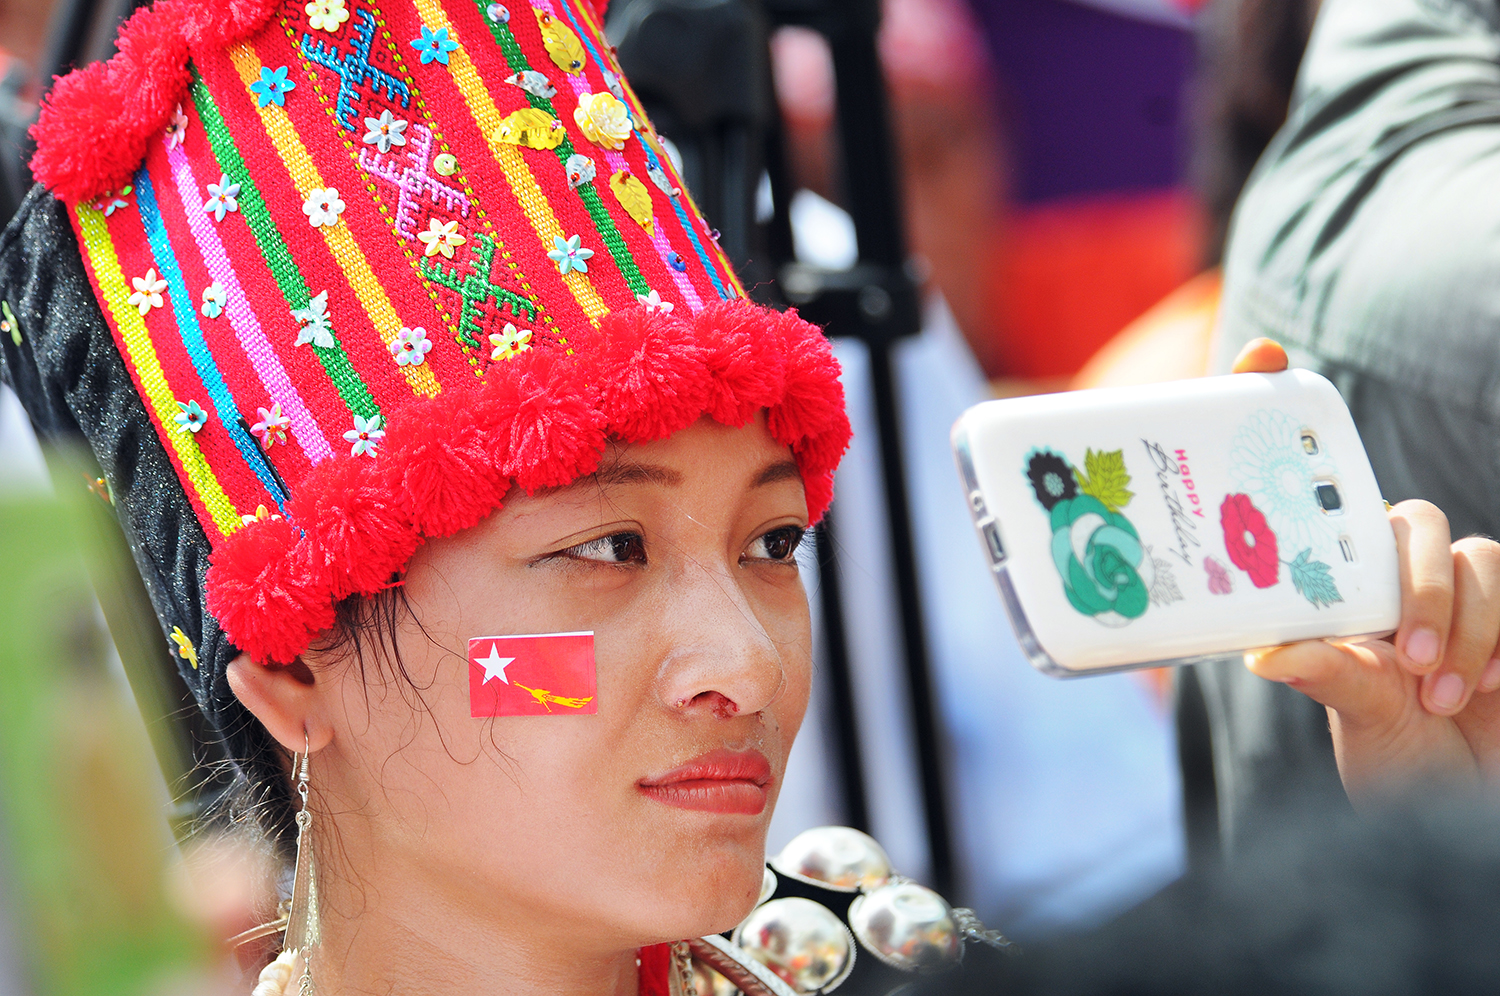 A Kachin woman attends a National League for Democracy rally in the Kachin State capital Myitkyina on October 2, 2015 ahead of the general election that year. (Steve Tickner | Frontier)